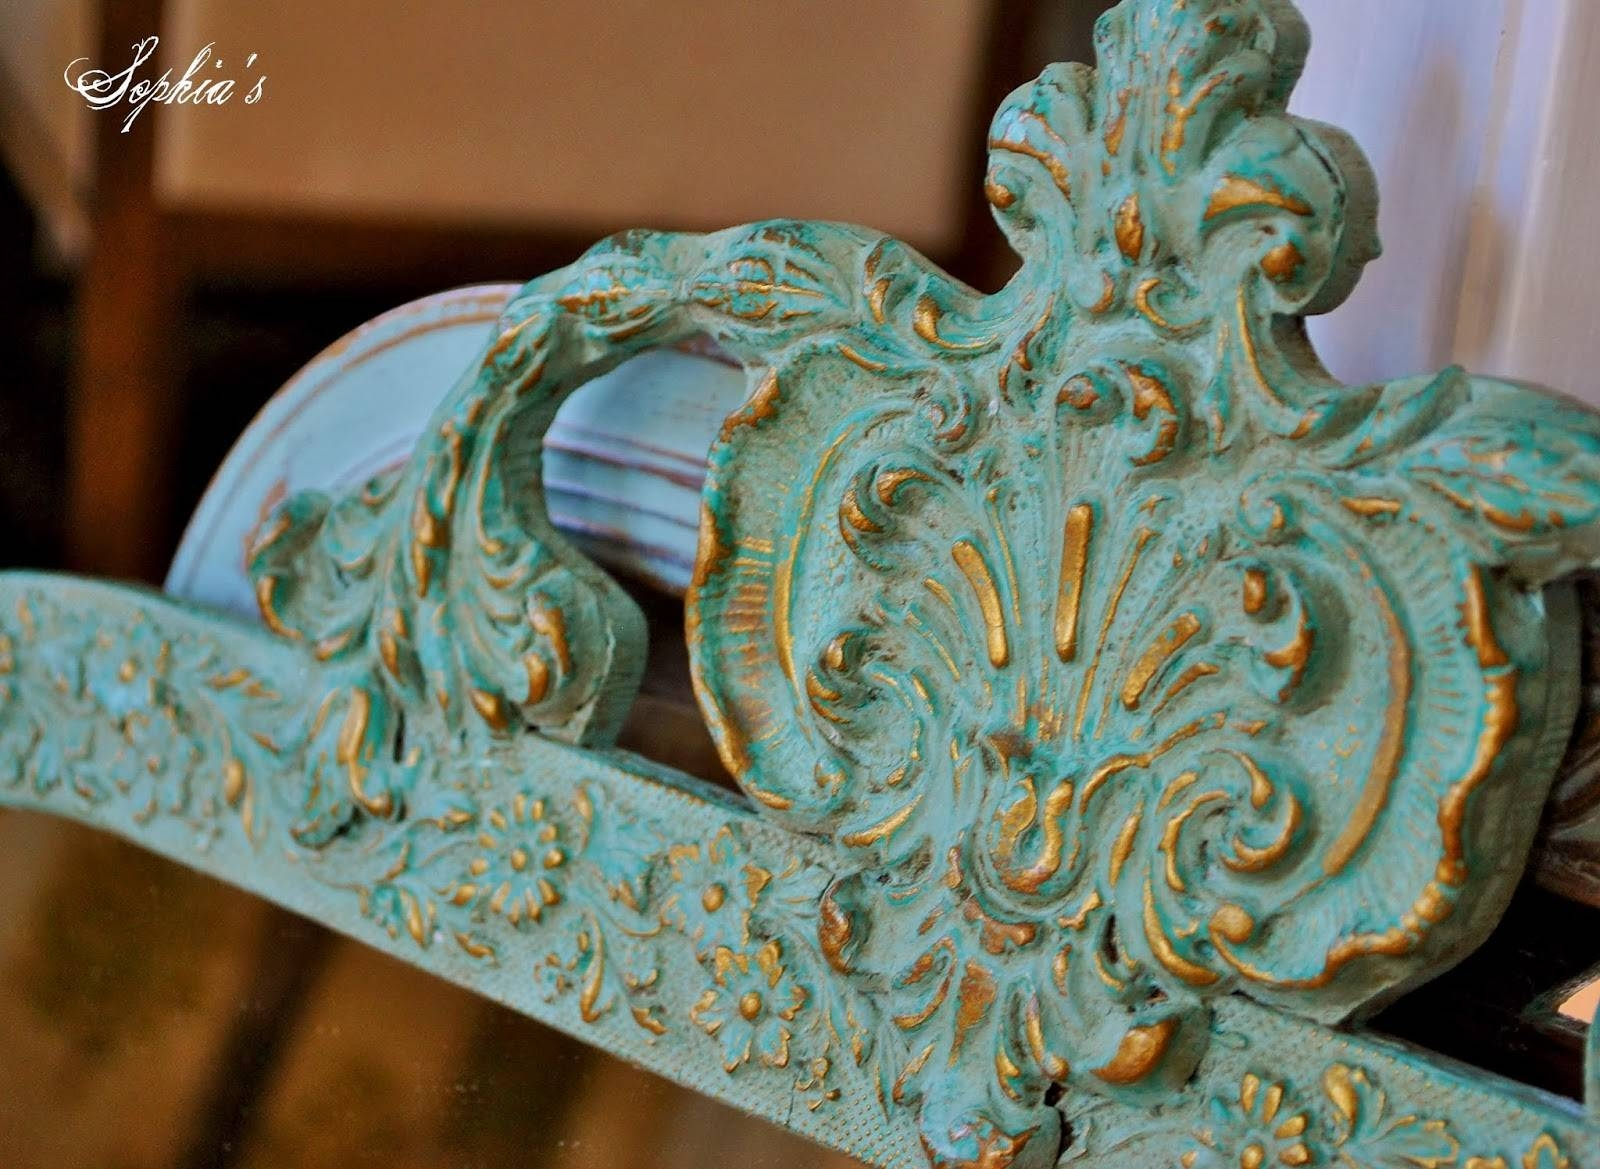 Sophia's: Updating Mirrors With Chalk Paint for Ornate Gold Mirrors (Image 23 of 25)